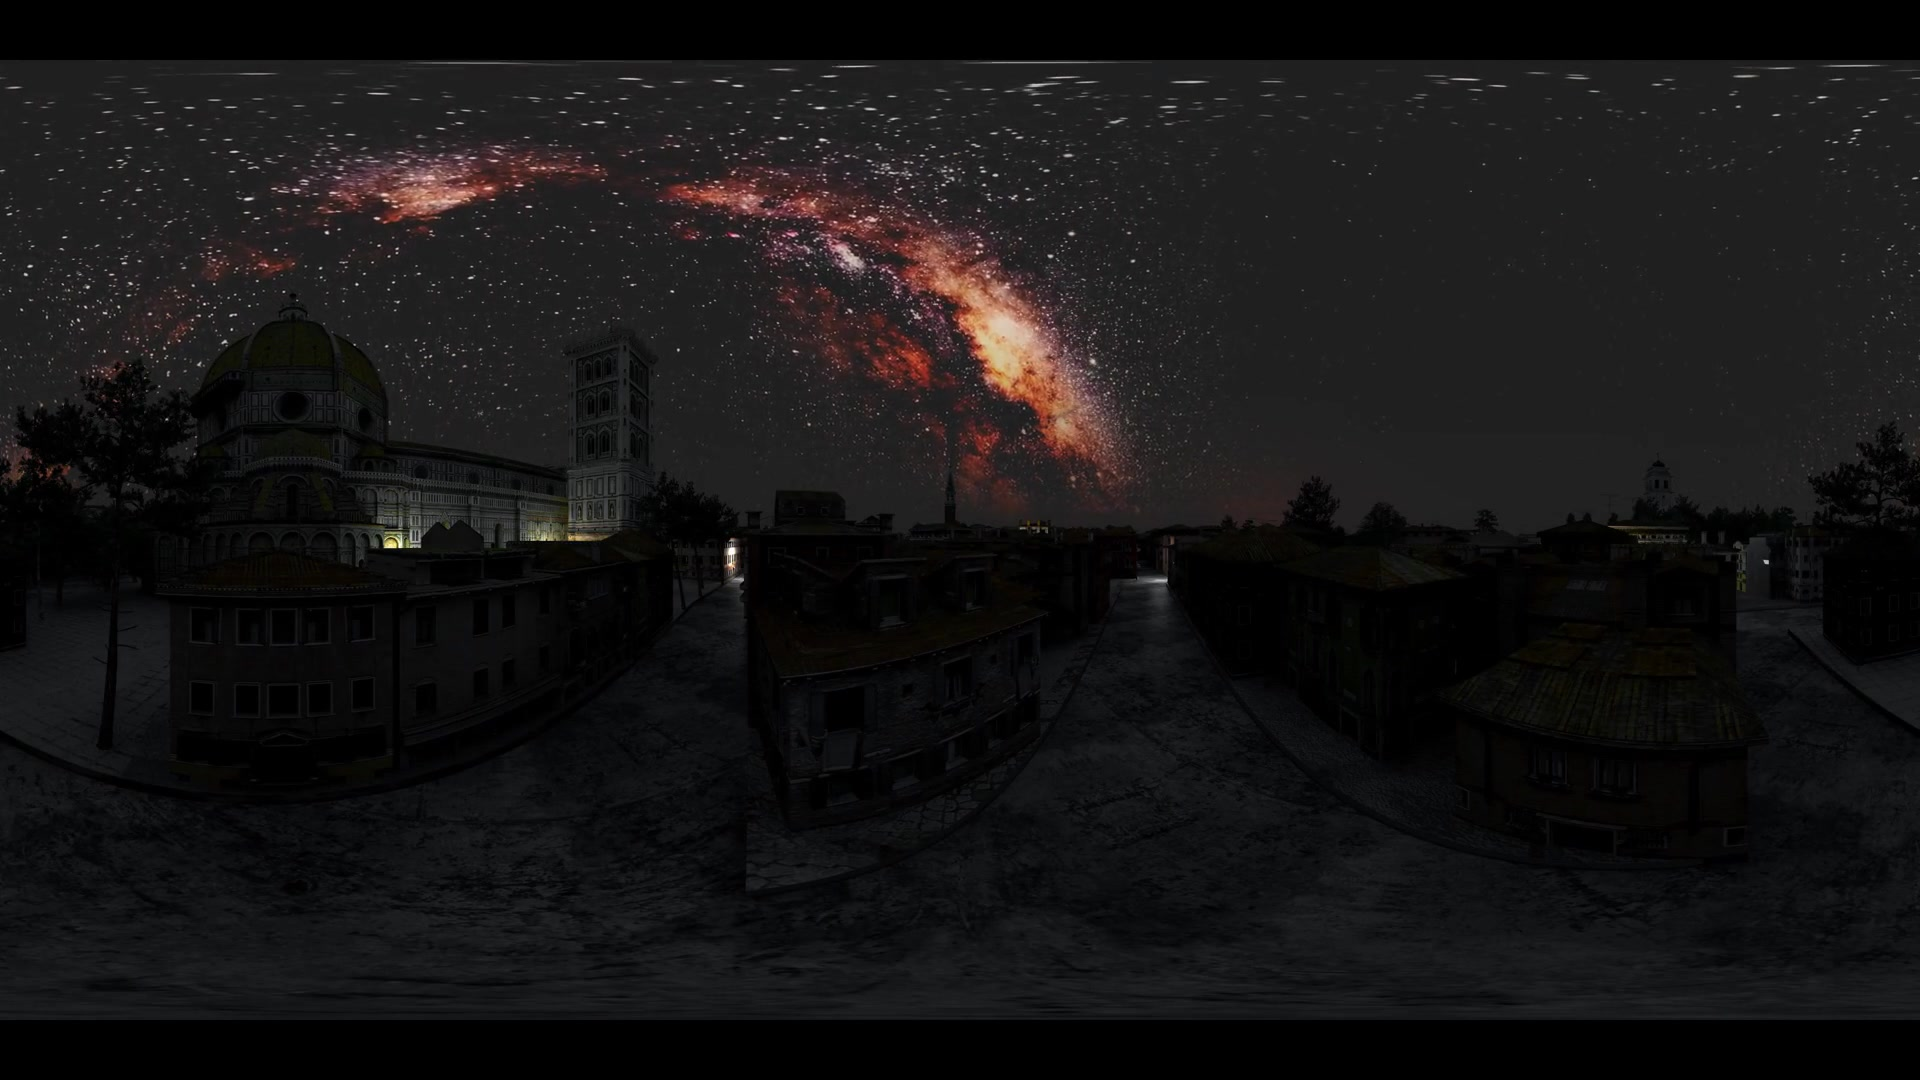 Milky Way stars at sunrise virtual reality 360 degree video. Elements of this image furnished by NASA